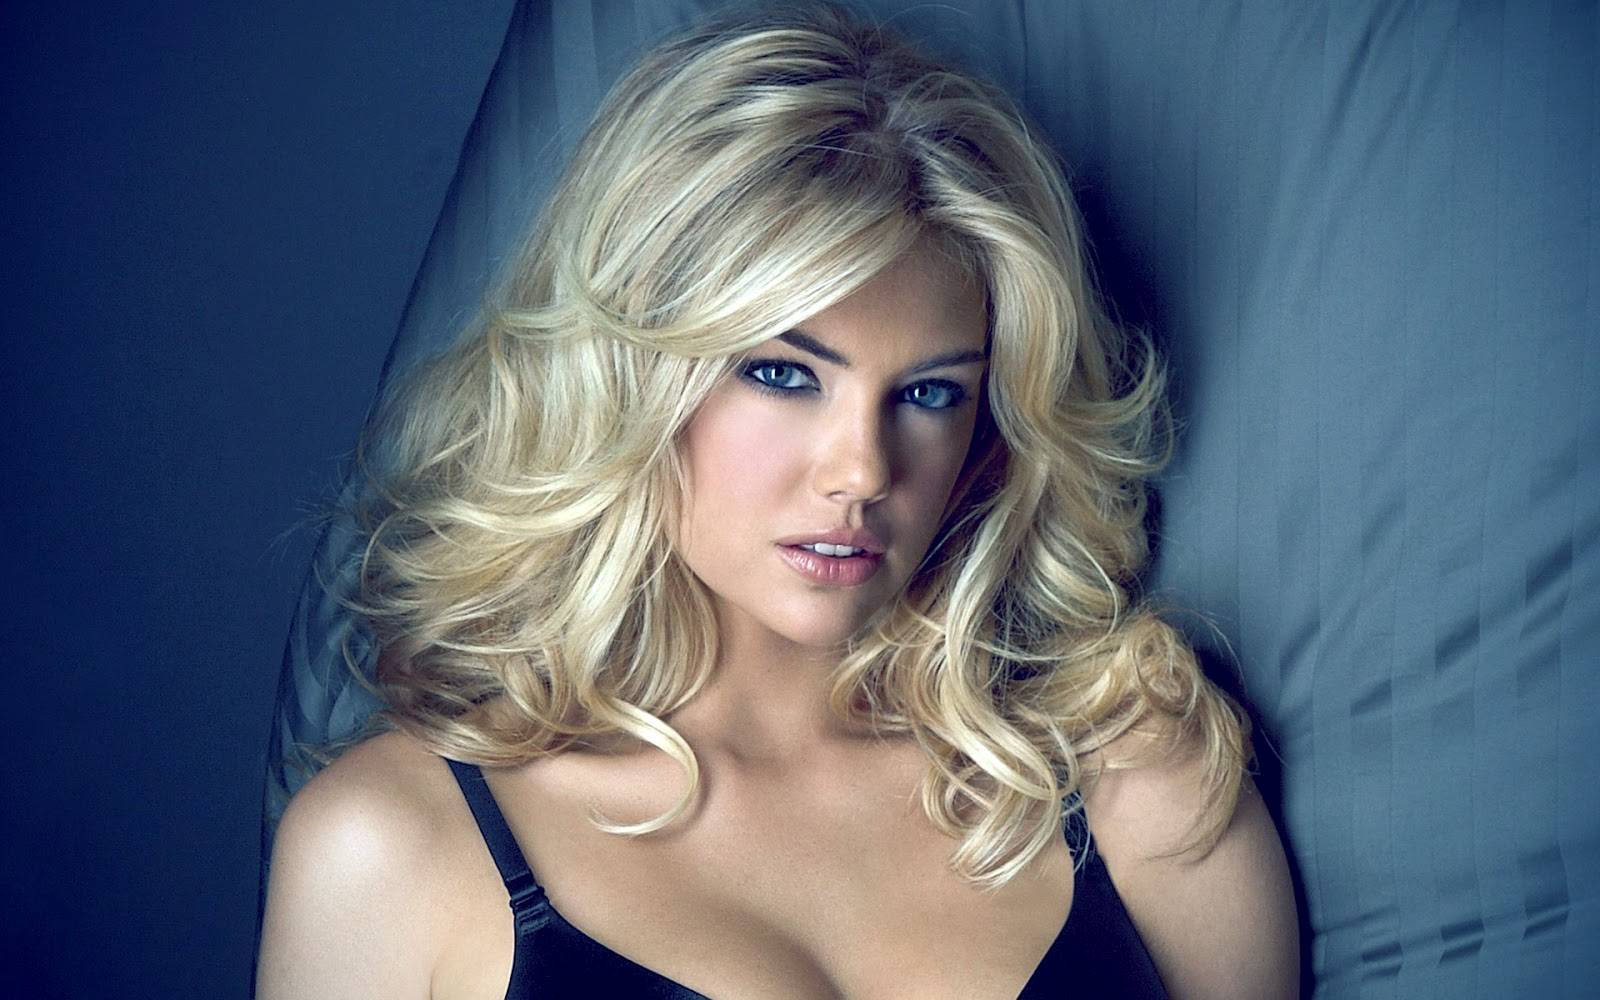 http://4.bp.blogspot.com/-o6g8rT69HpE/UAznFzjqdcI/AAAAAAAADIU/EwE-cAyZ5Eo/s1600/kate+upton+hd+wallpapers,kate+upton+latest+photoshoot.jpg